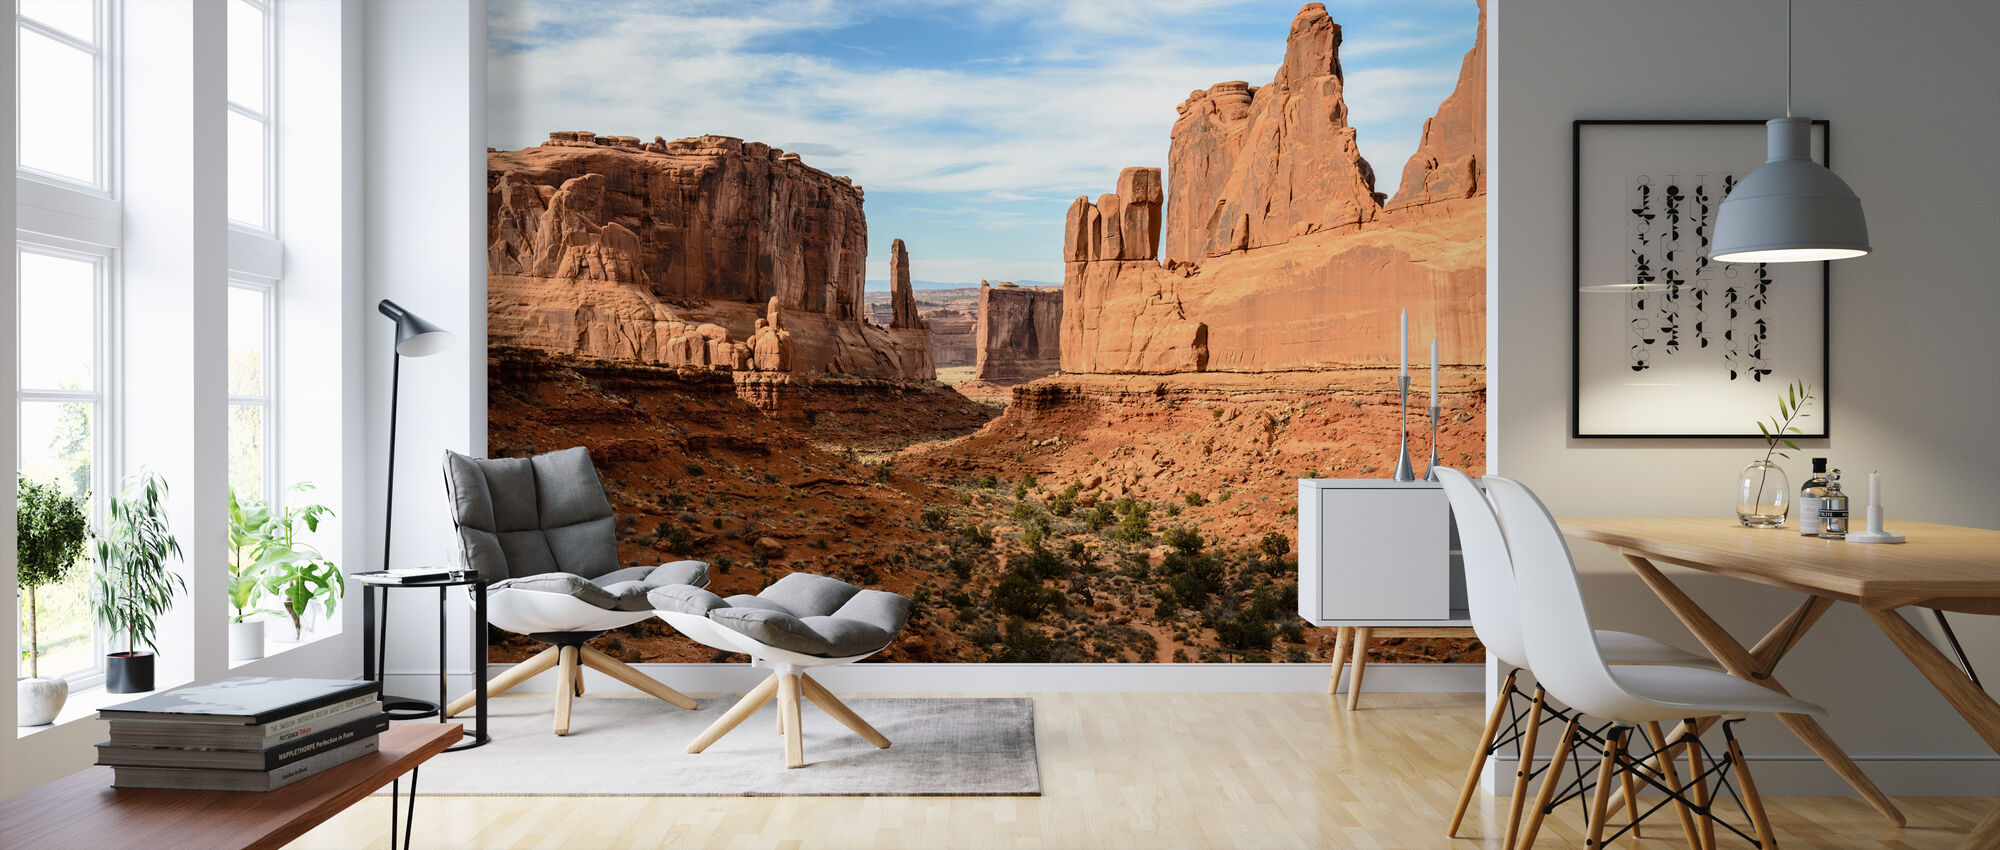 Park Avenue, Arches National Park - Wallpaper - Living Room